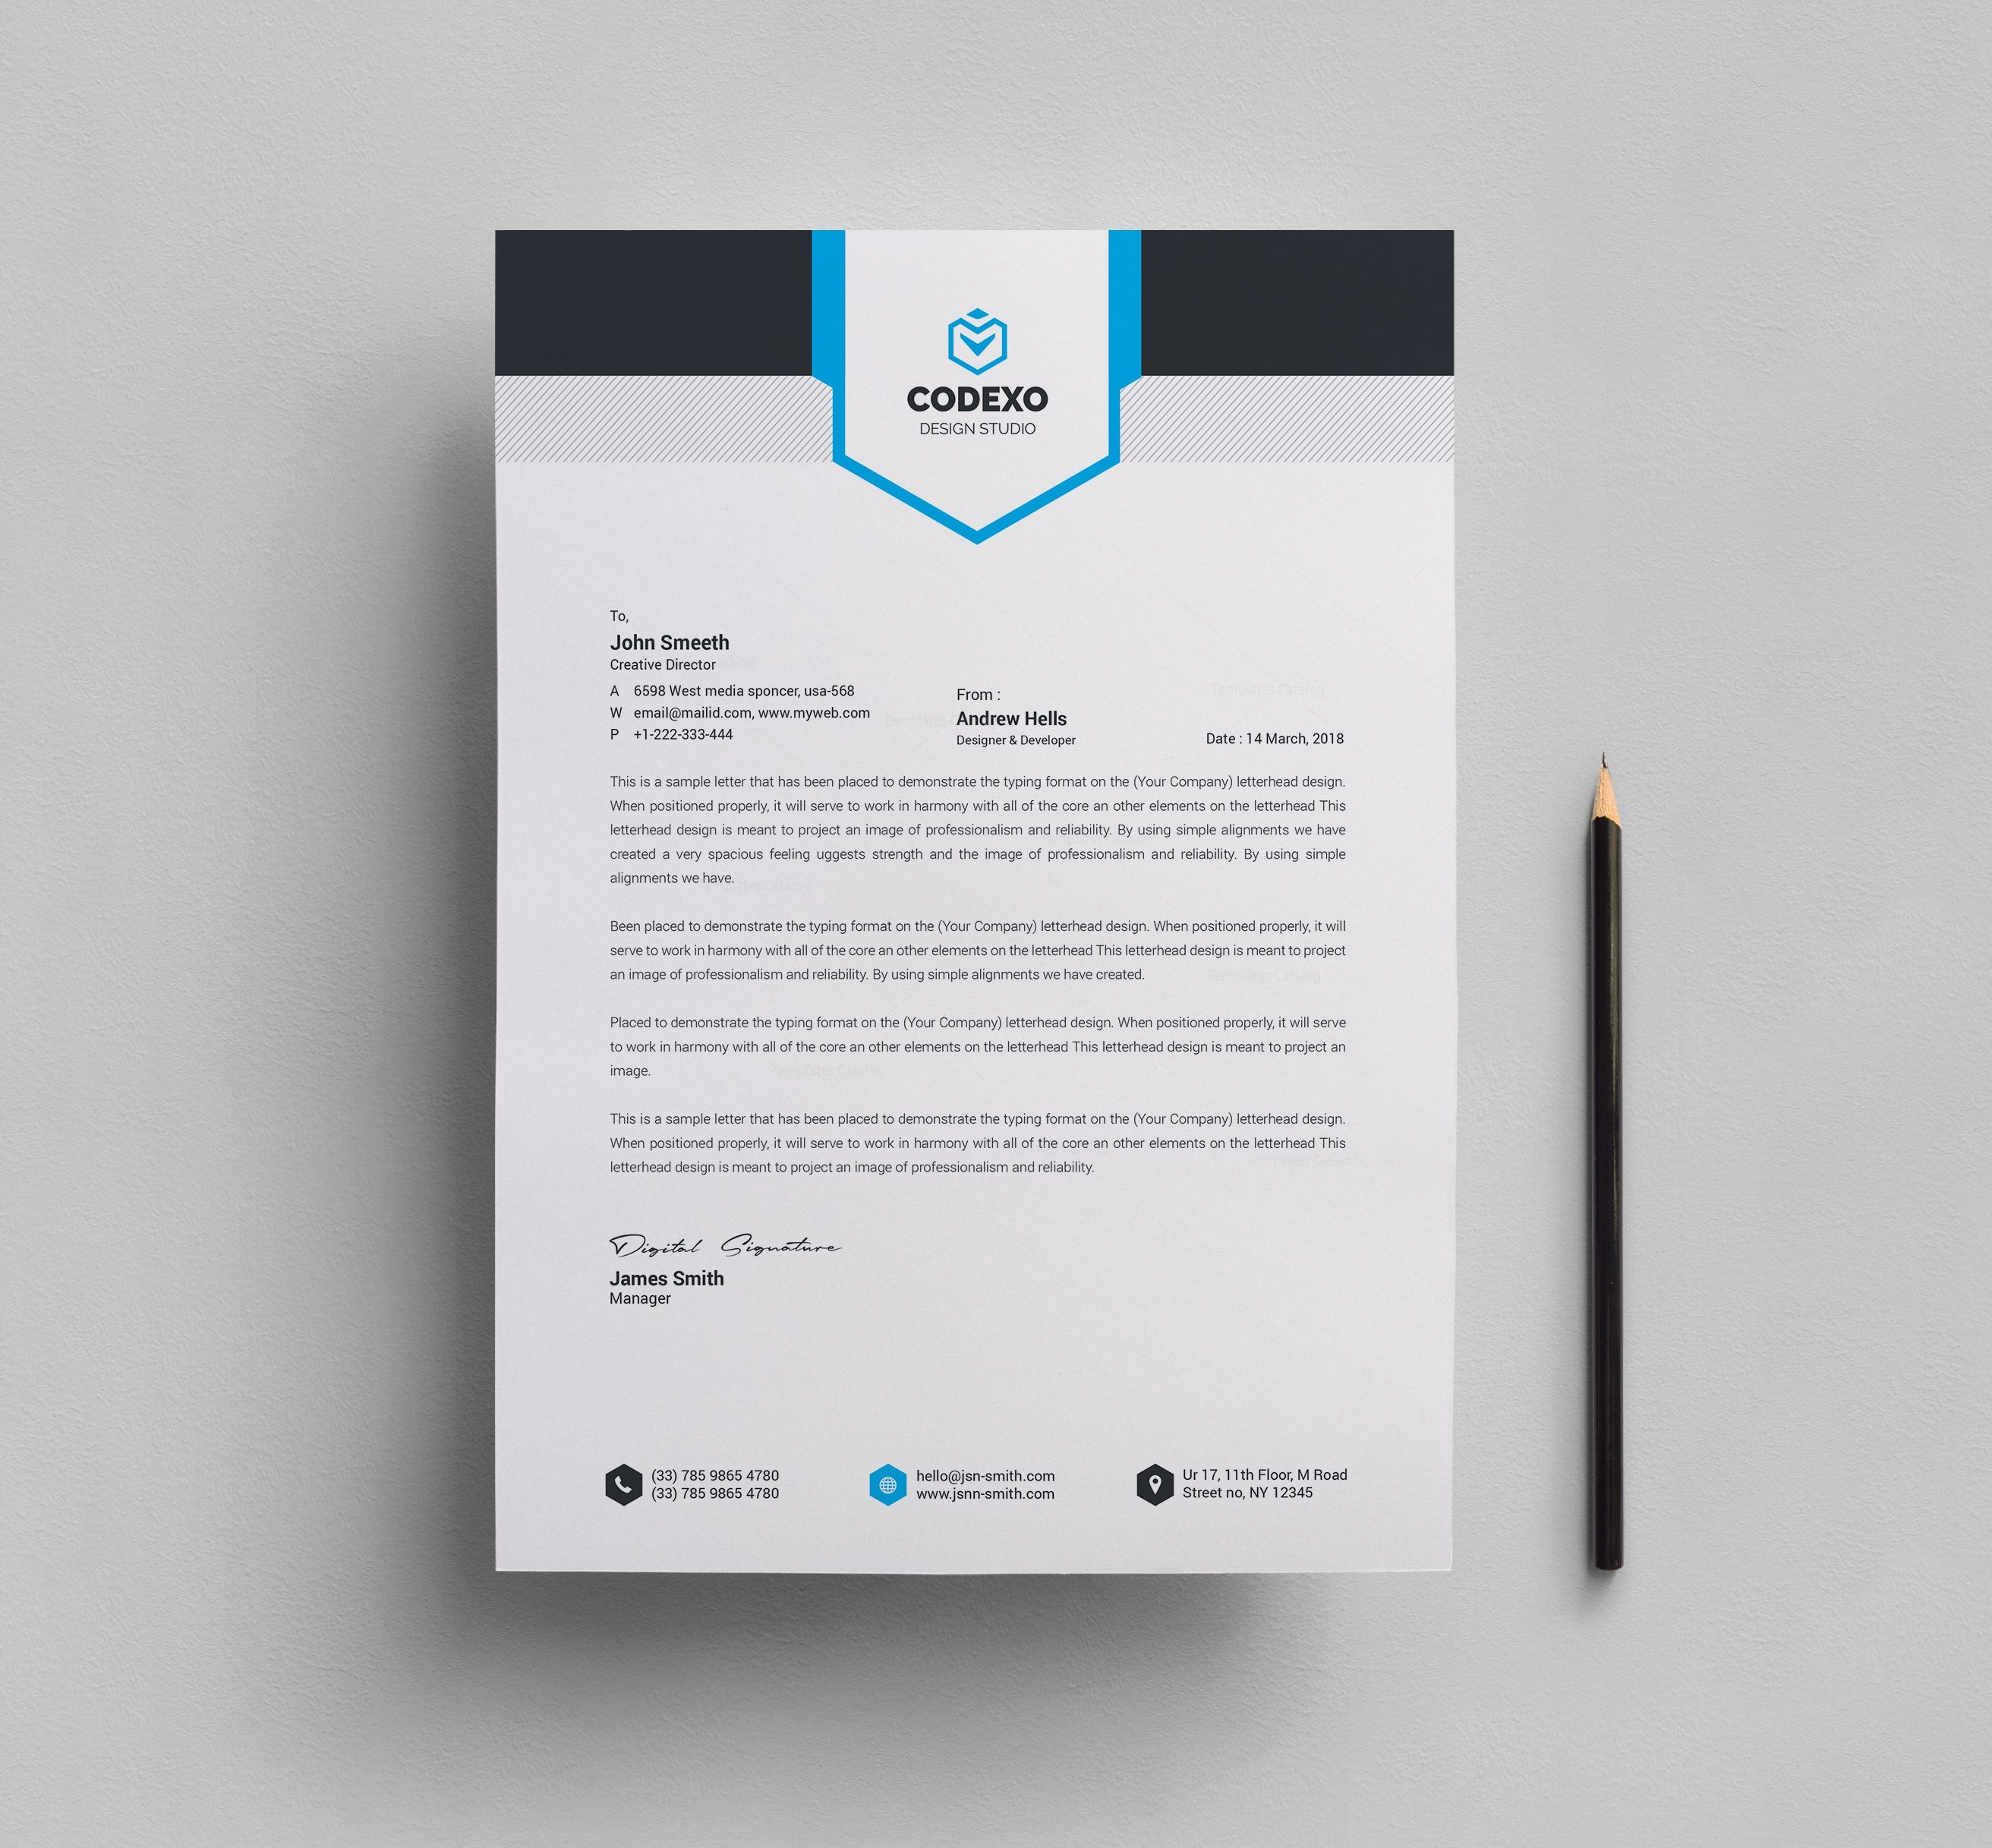 letter head Company letterhead design ideas stand out from one and two-color business letterhead designs by printing in full color this will make every note you write, or letter you print, grab interest from the recipient.